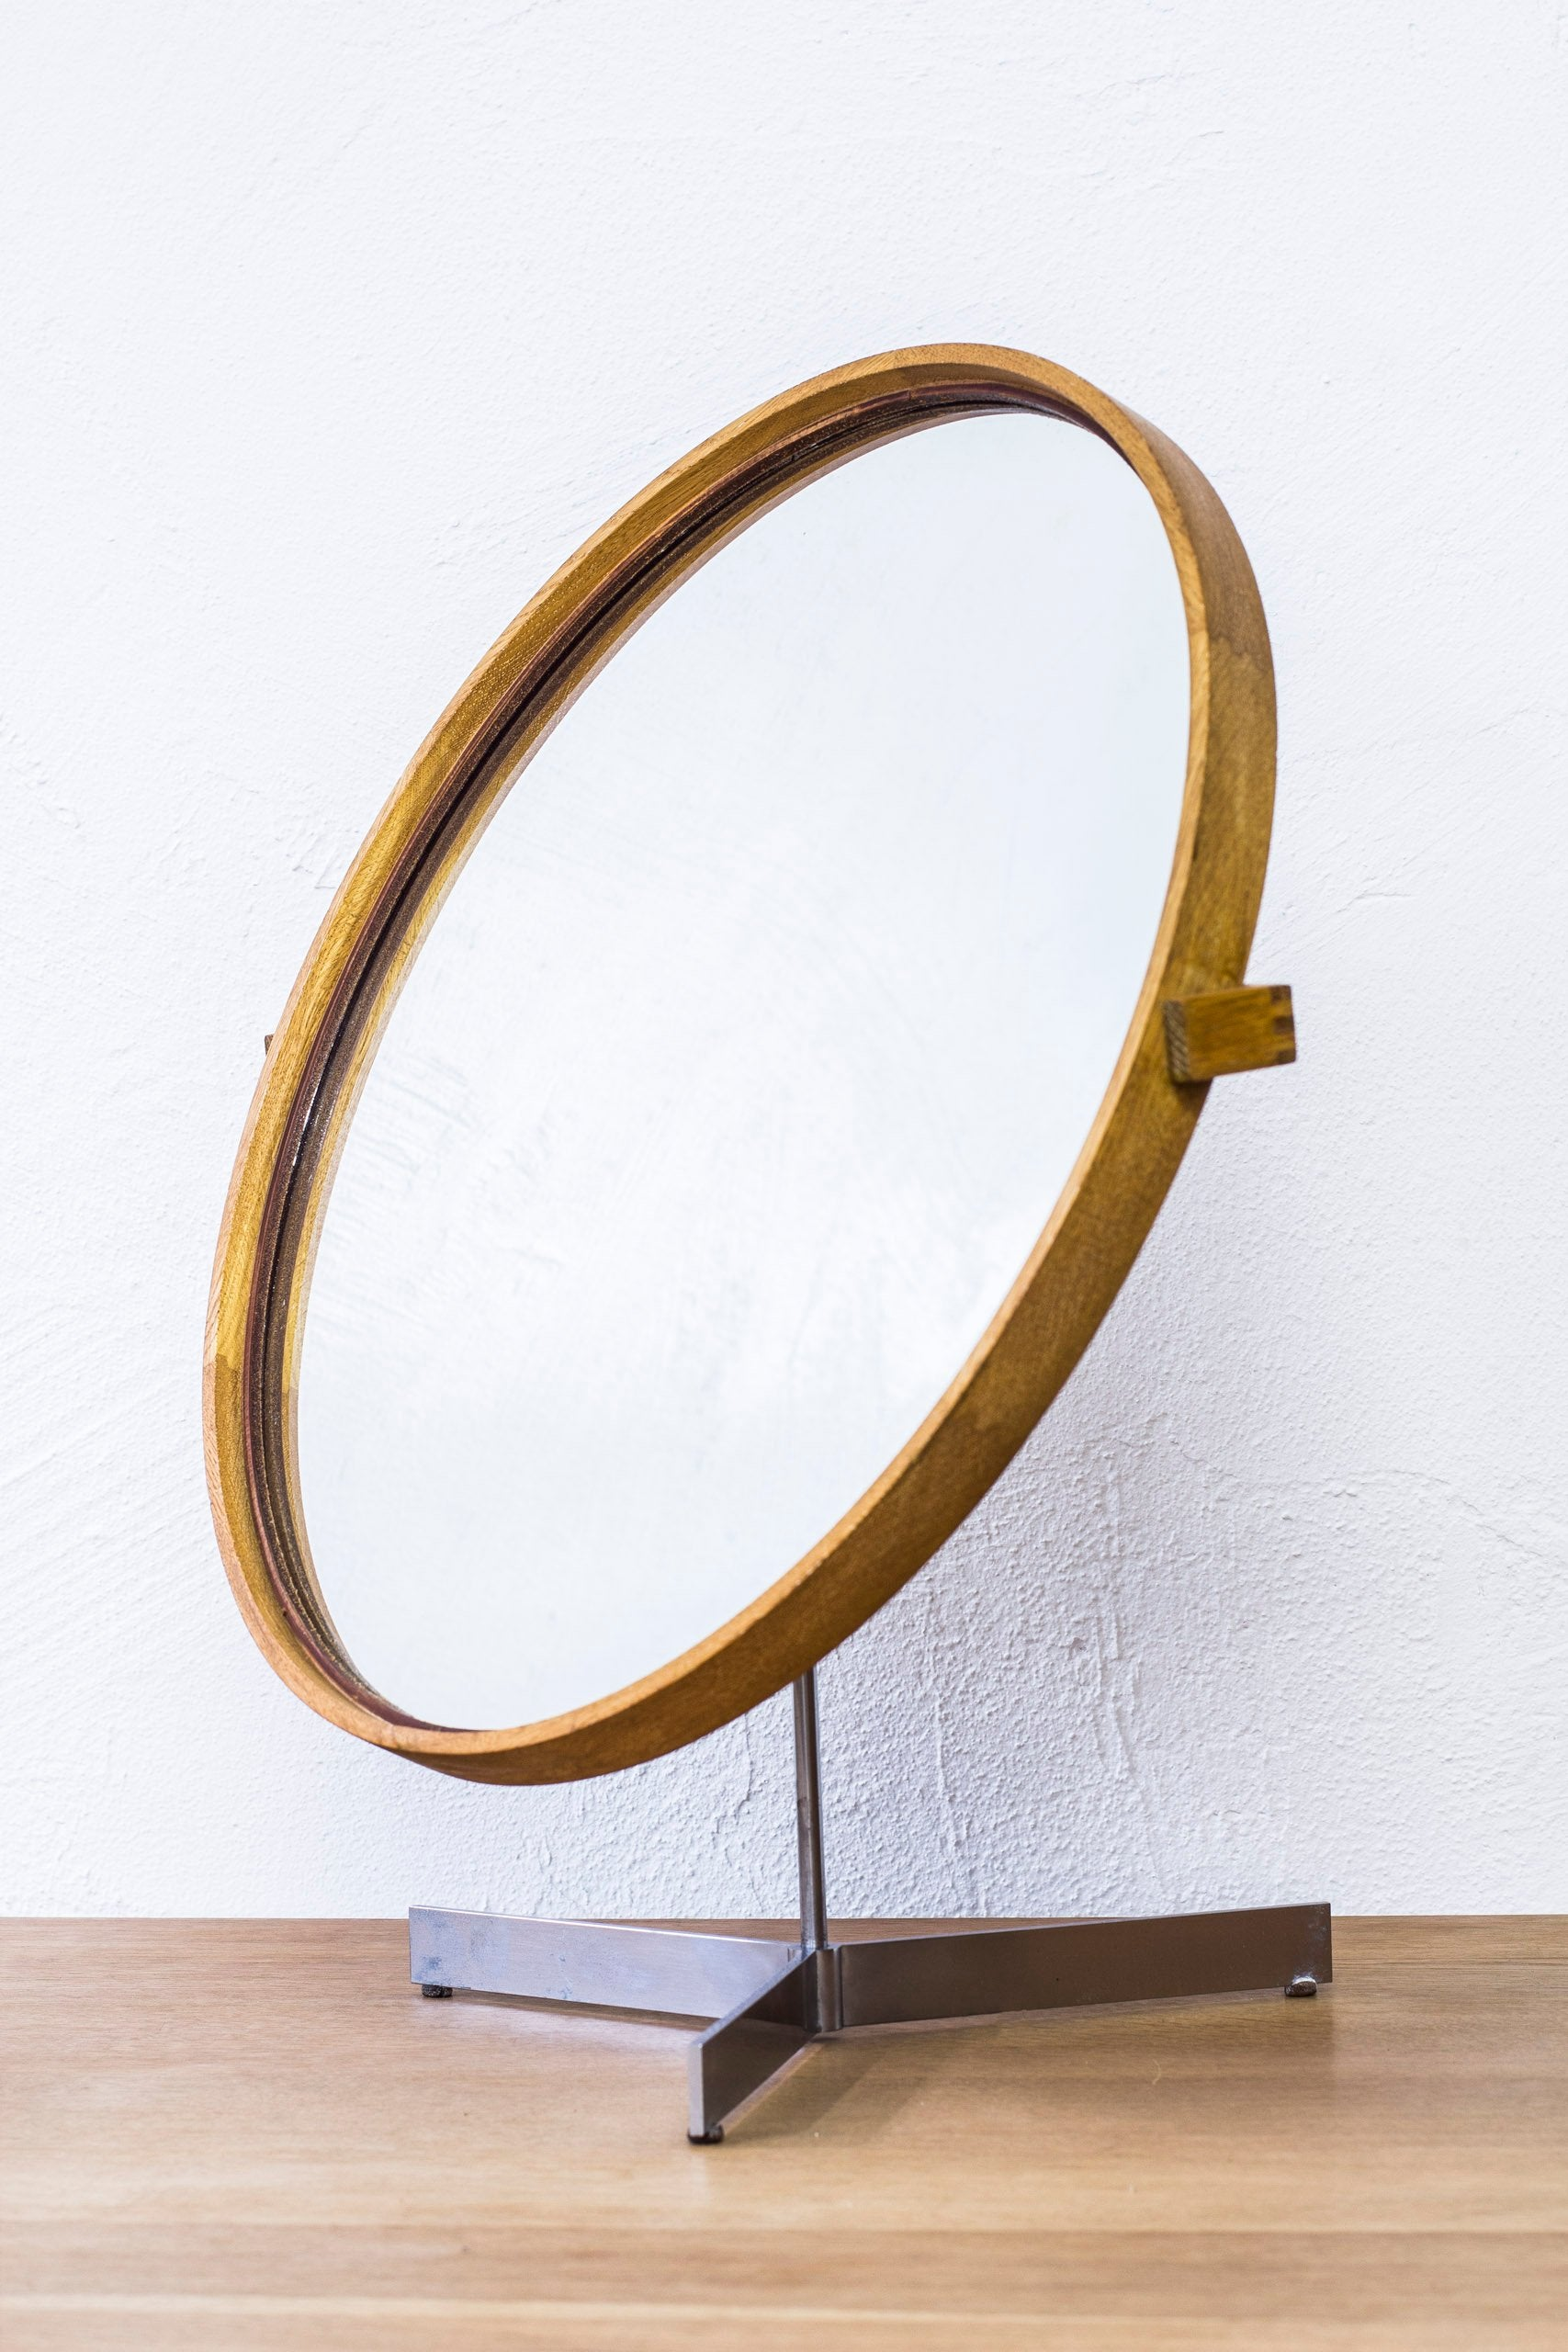 Table mirror by Uno & Östen Kristiansson